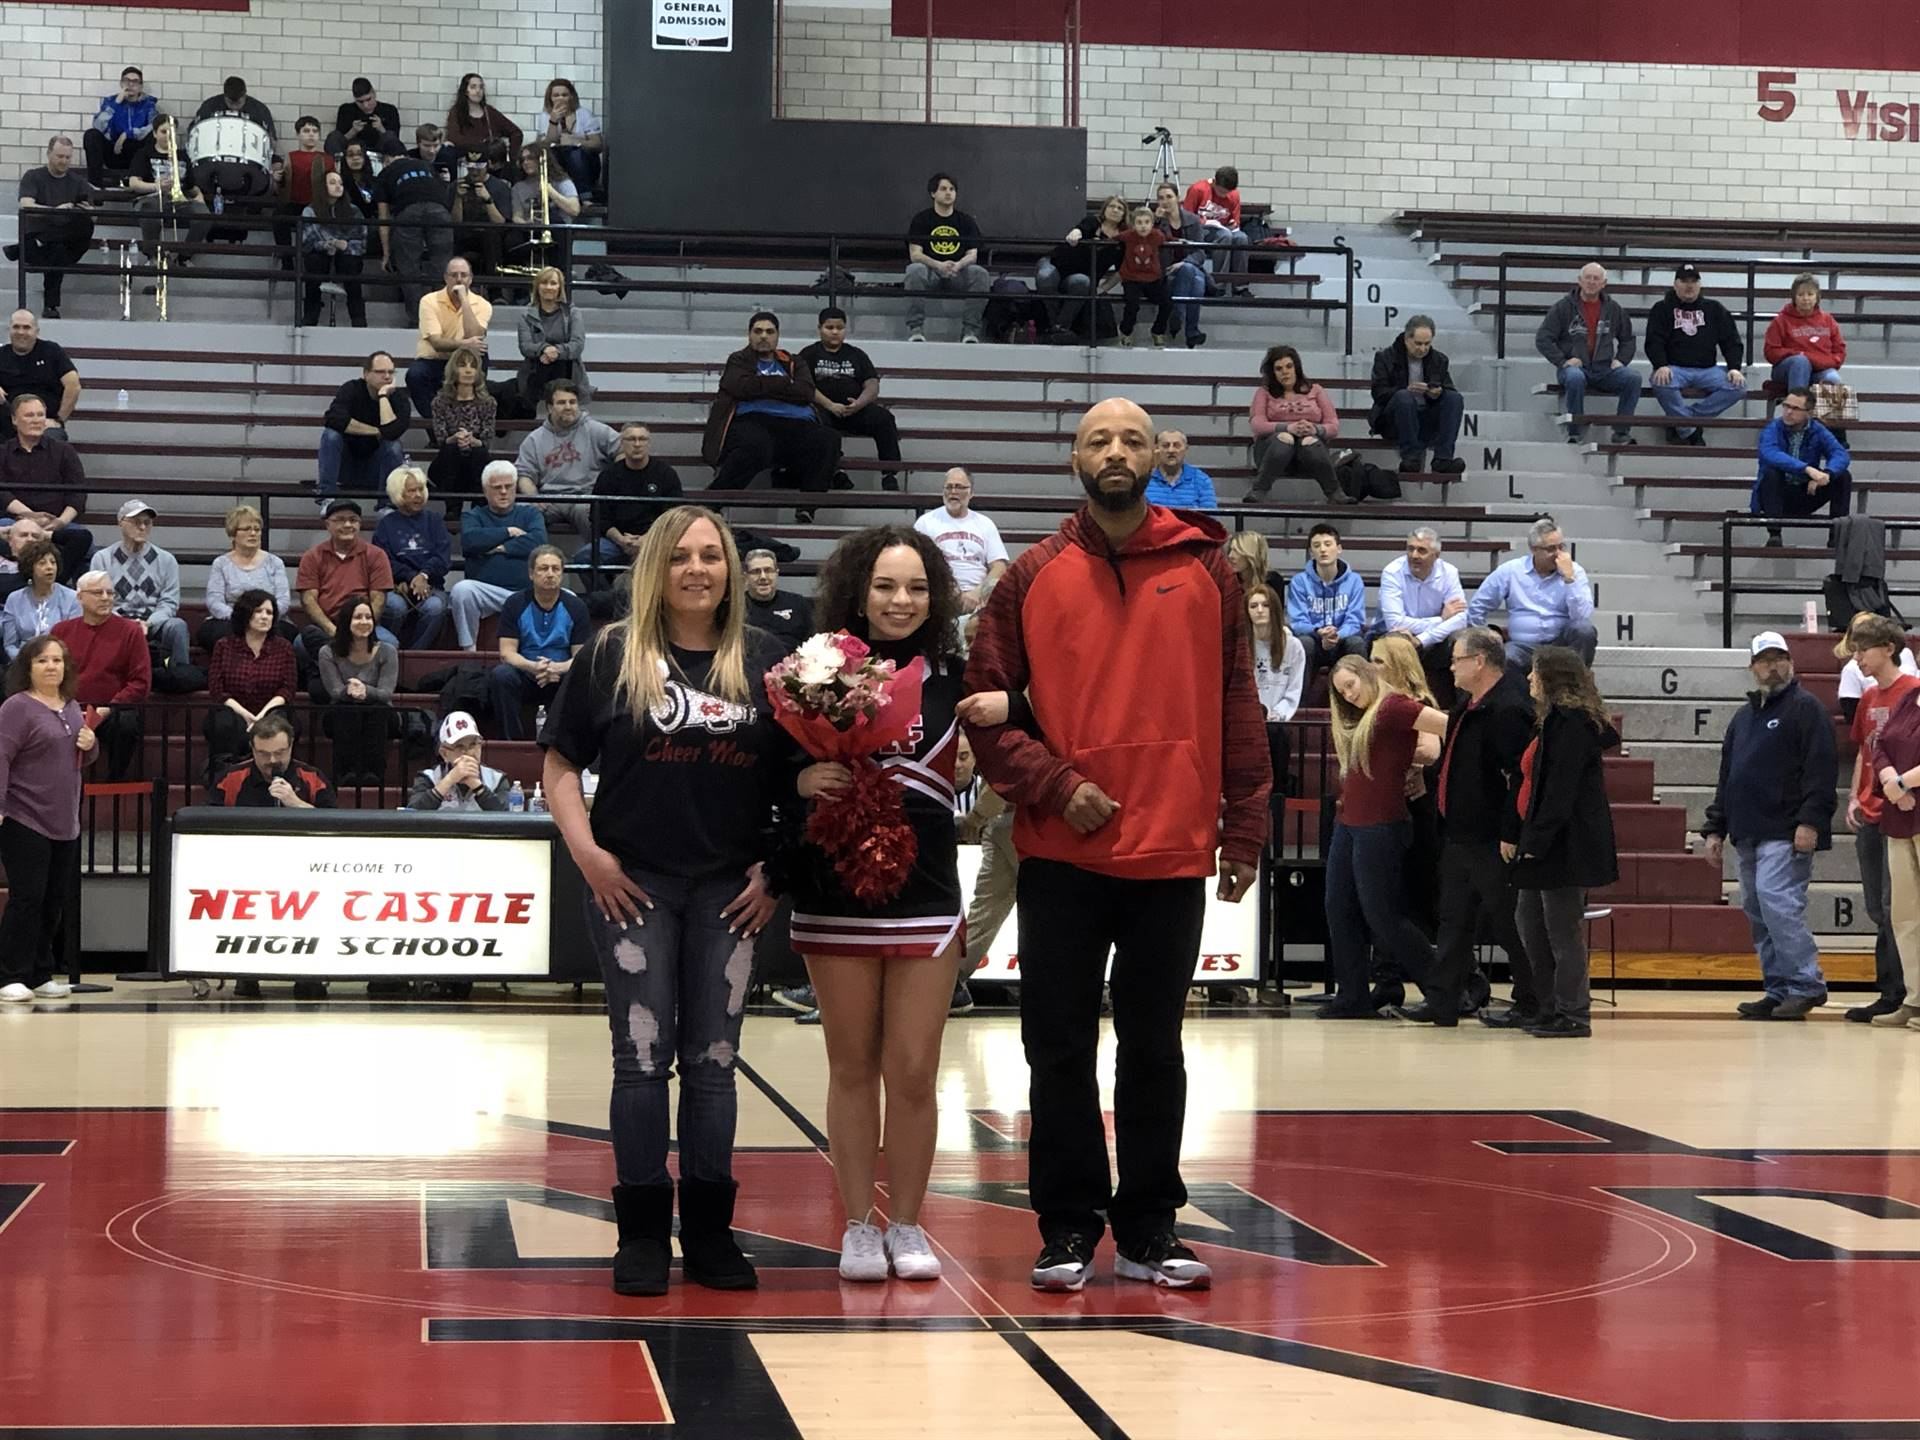 Hayla Tipper, escorted by Carla Lazar and Octavius Tipper